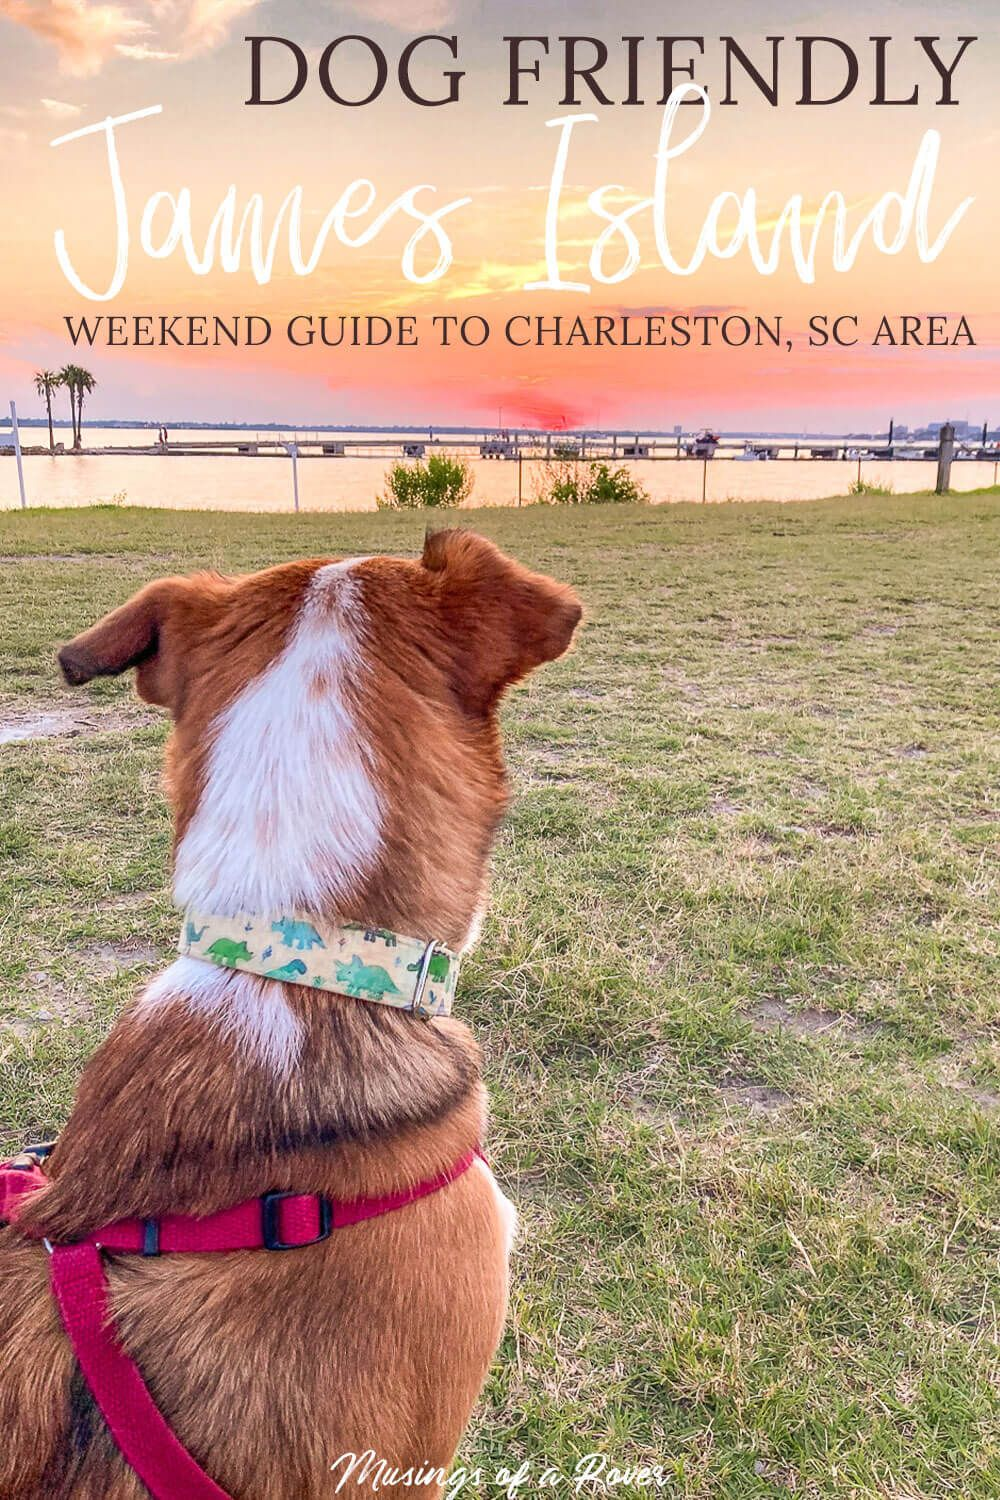 Looking for a dog friendly guide to James Island and the Charleston, SC area? This one includes breweries, restaurants, beaches, parks, and more! Find out where to stay, where to eat, what to do, and where to go!